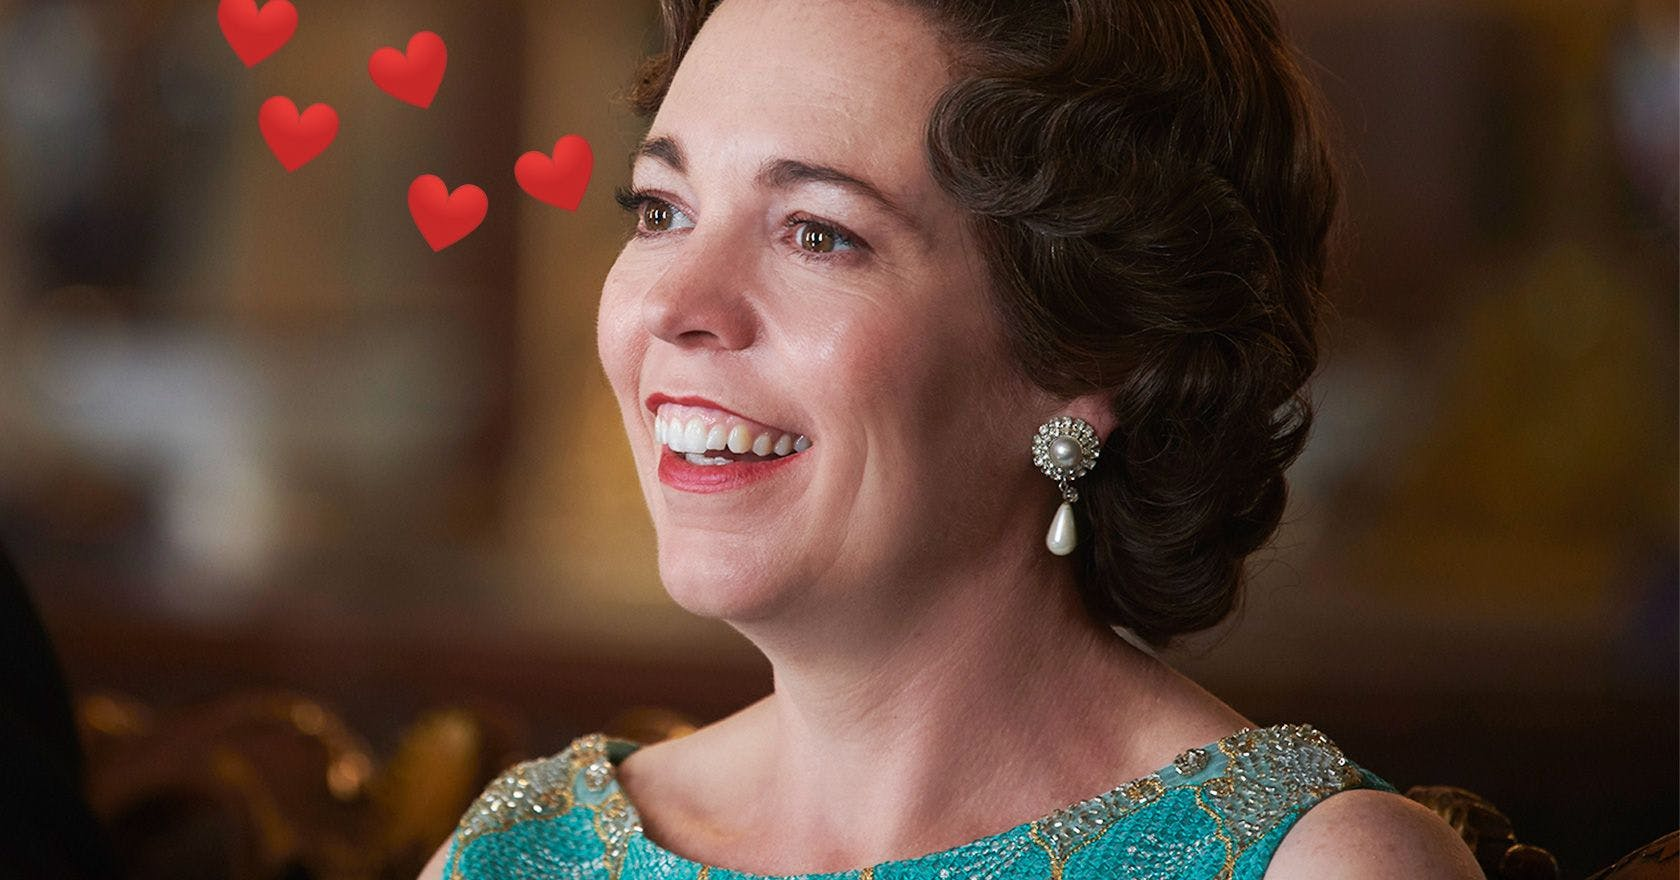 The Crown season 3: Is The Crown's Hot Journalist based on a real person?